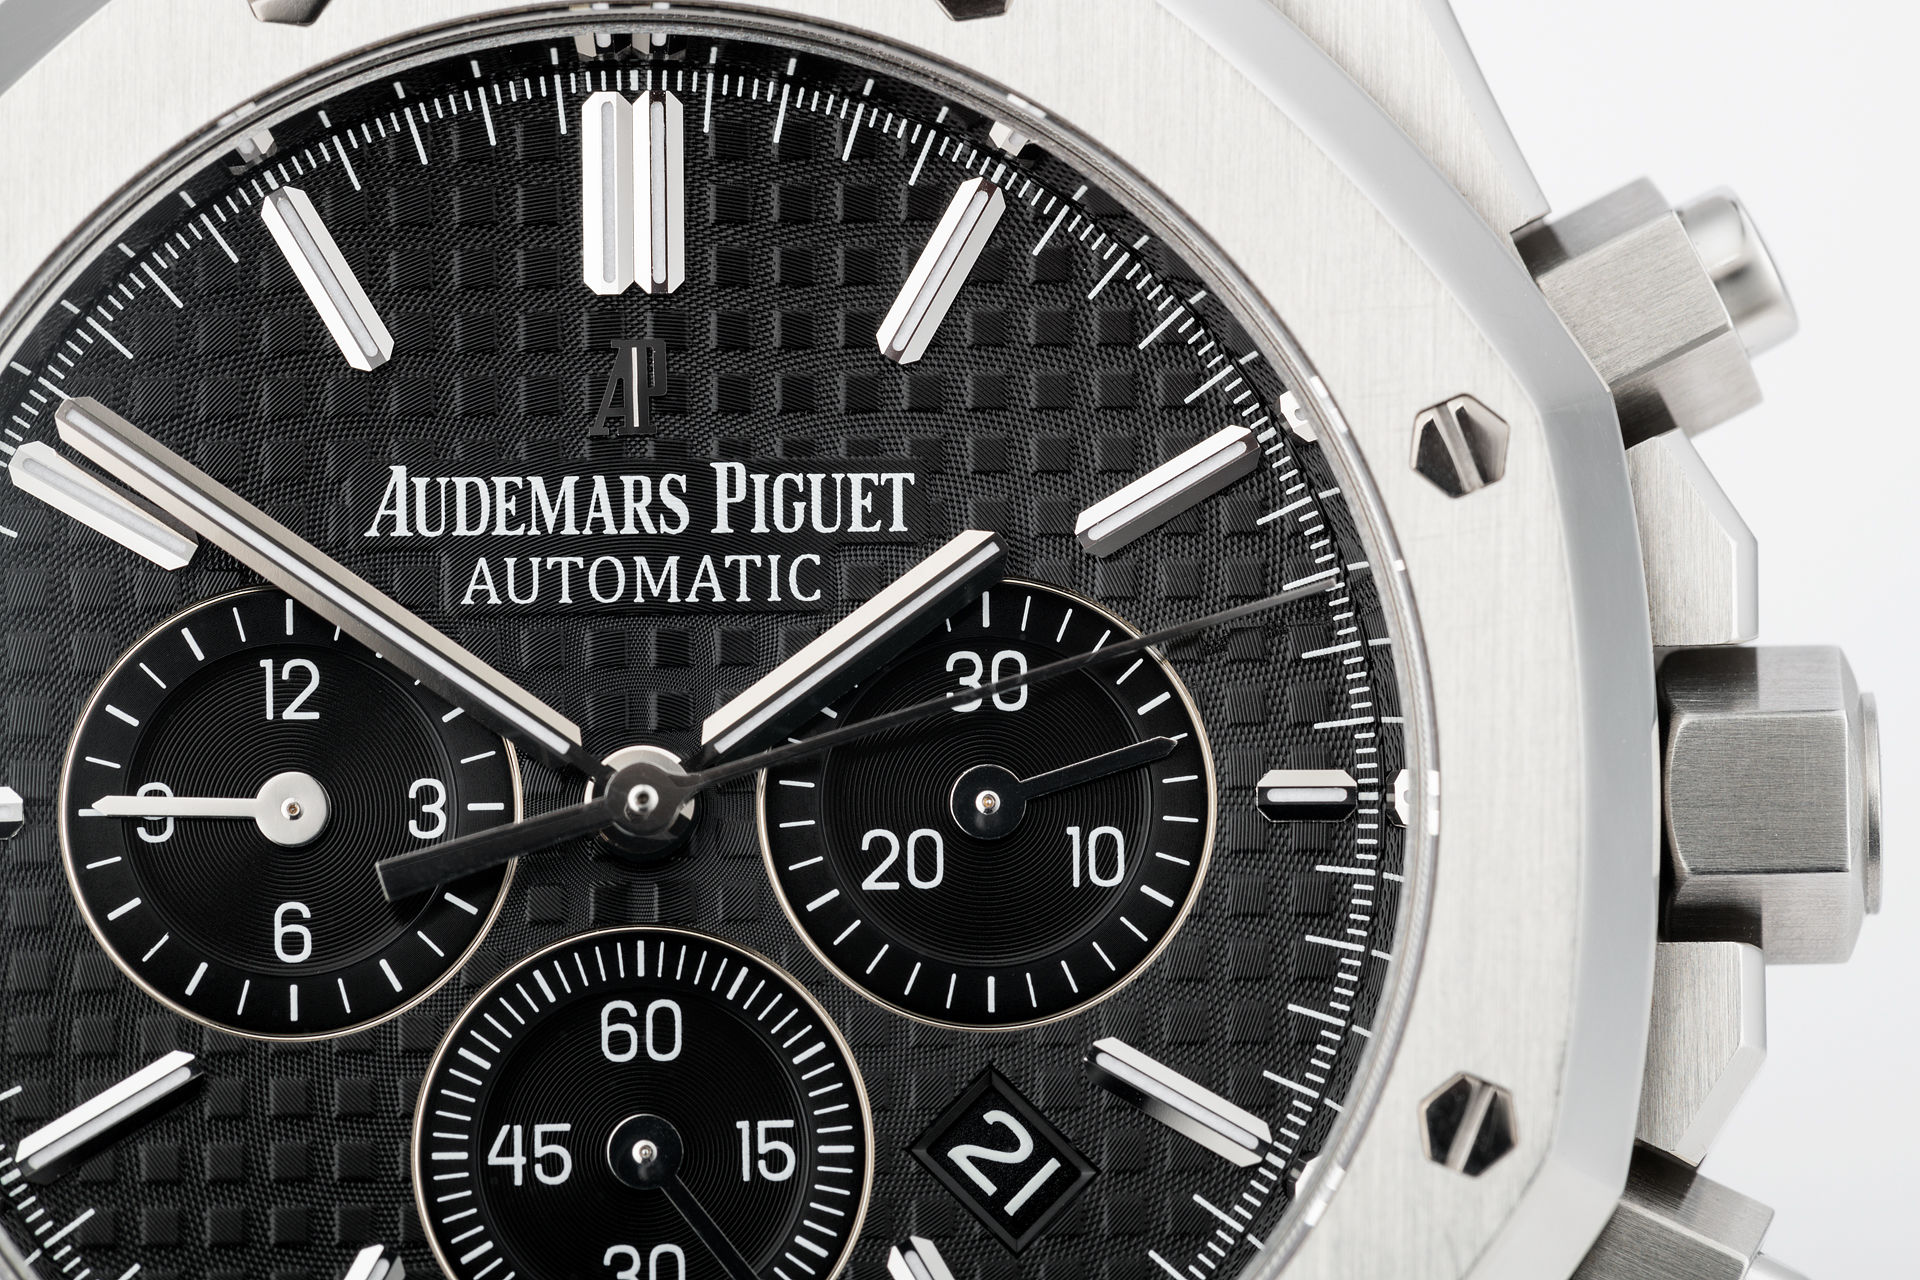 ref 26320ST.OO.1220ST.01 | Box and Papers 'Never Polished' | Audemars Piguet Royal Oak